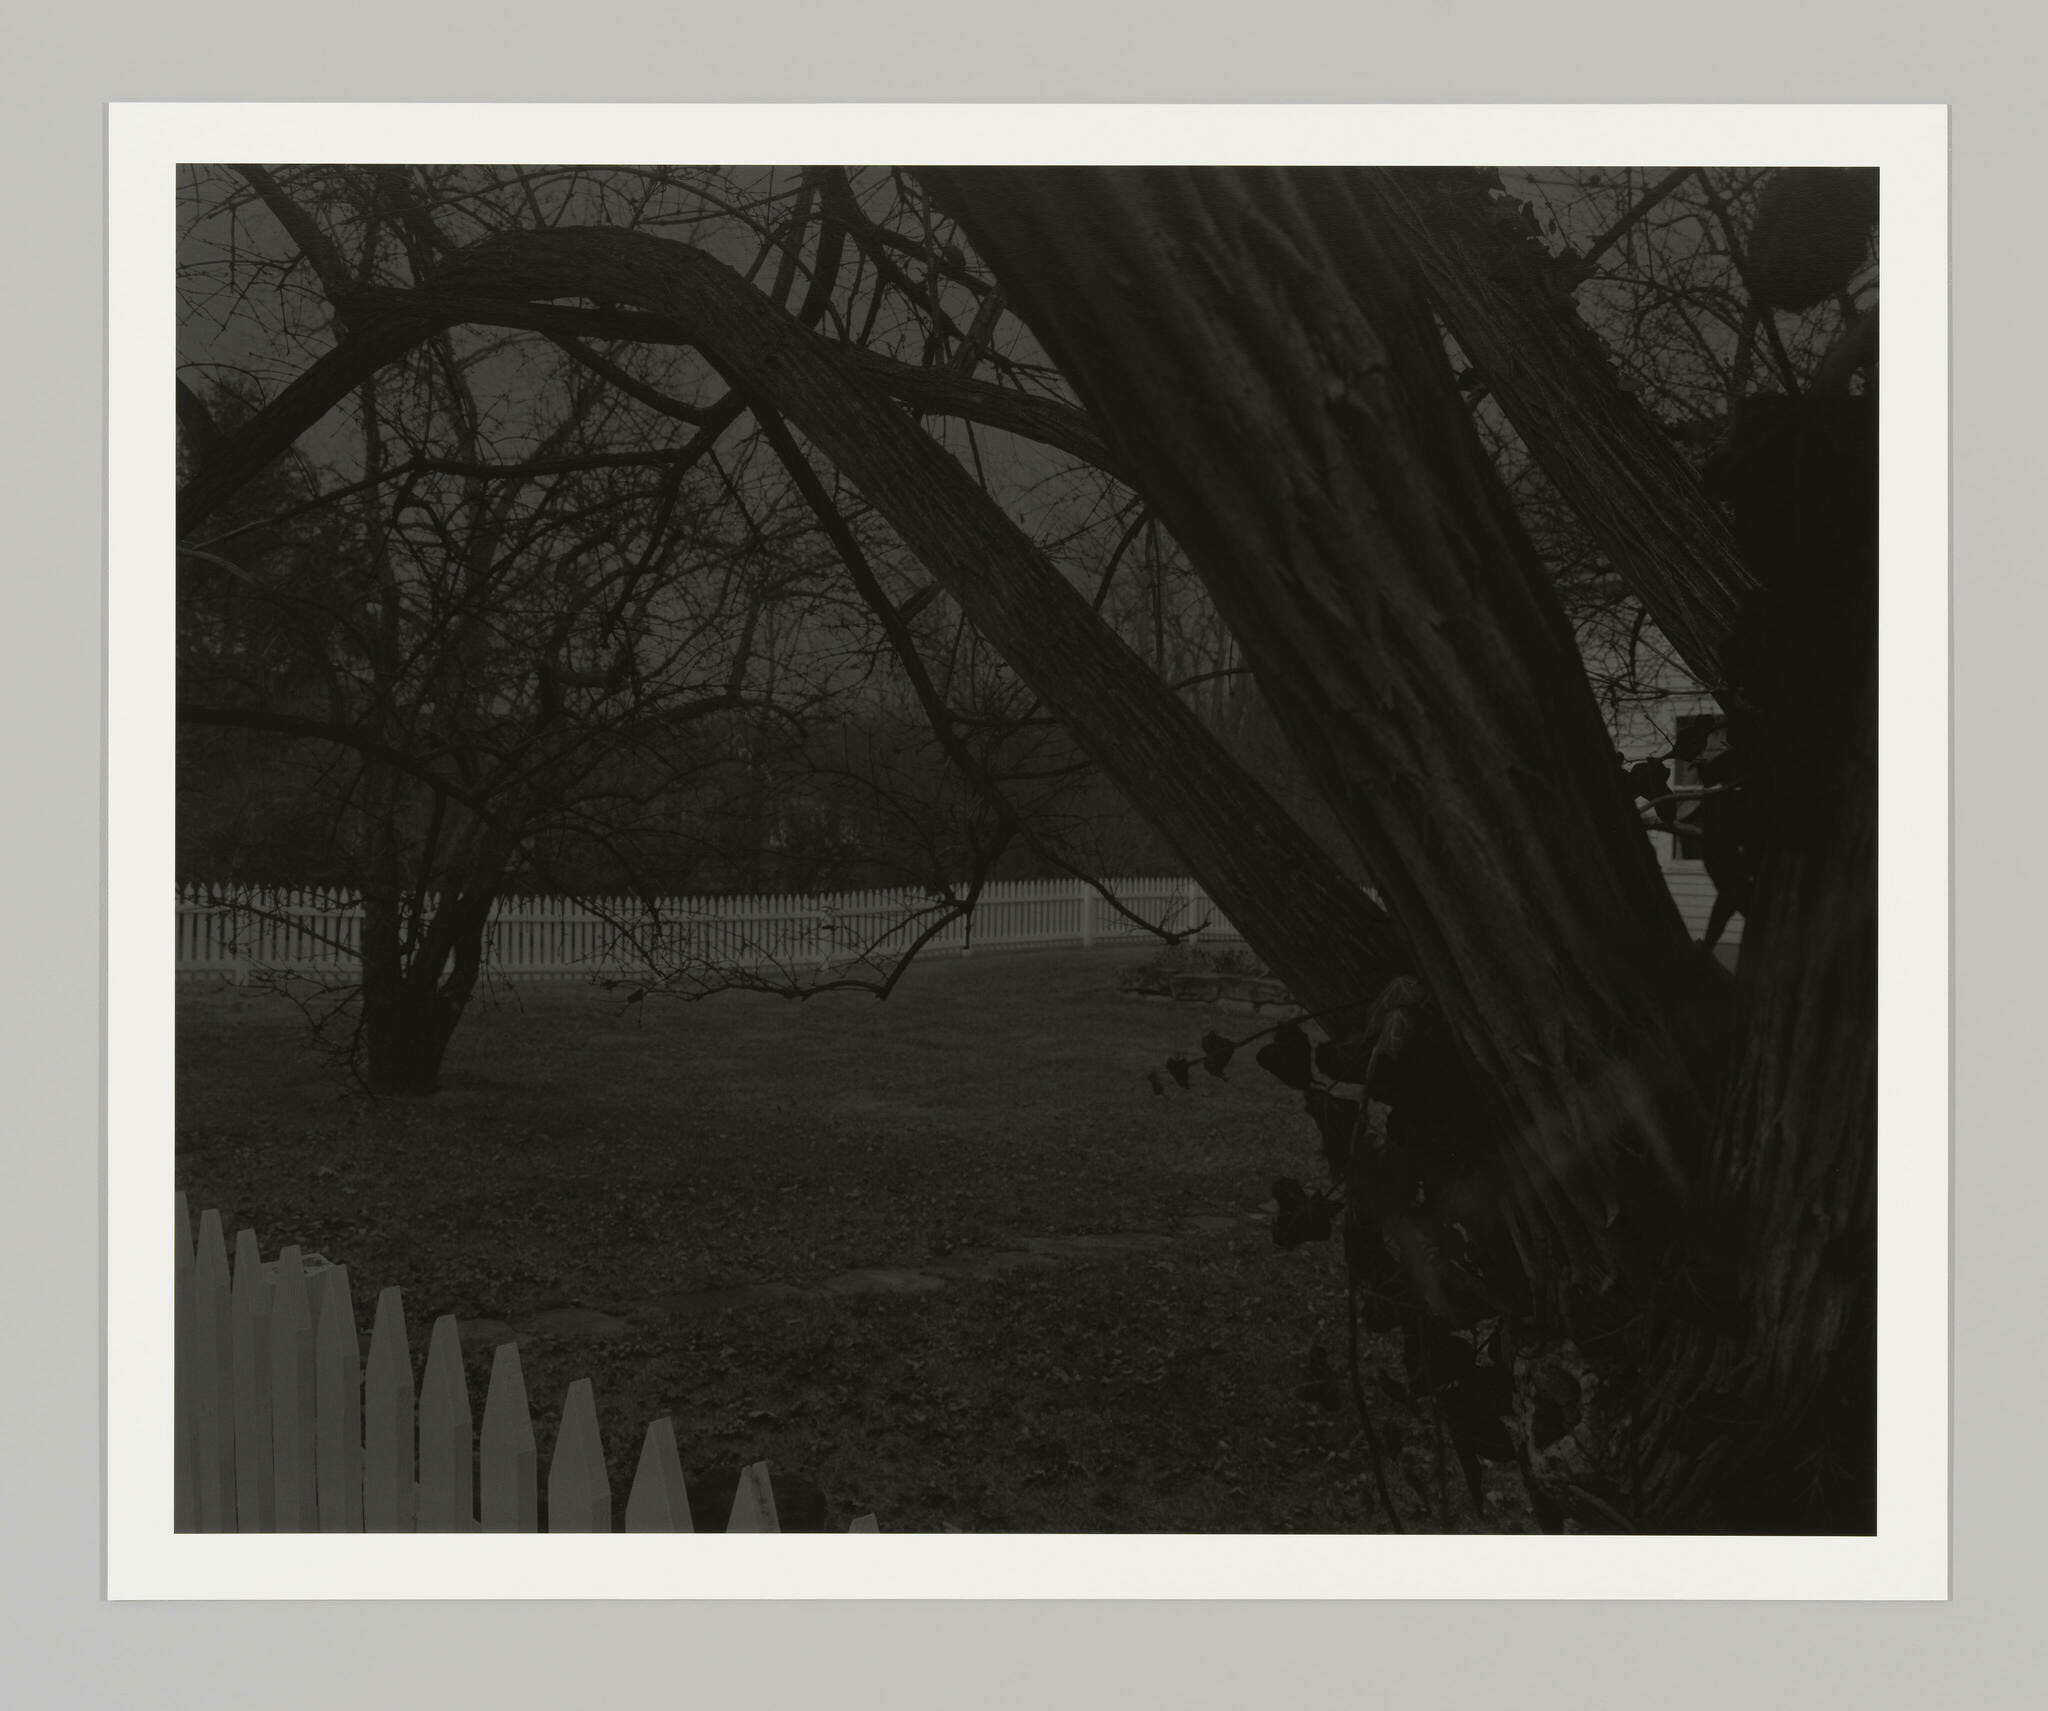 A greyscale image shows two bare trees enclosed by a white picket fence